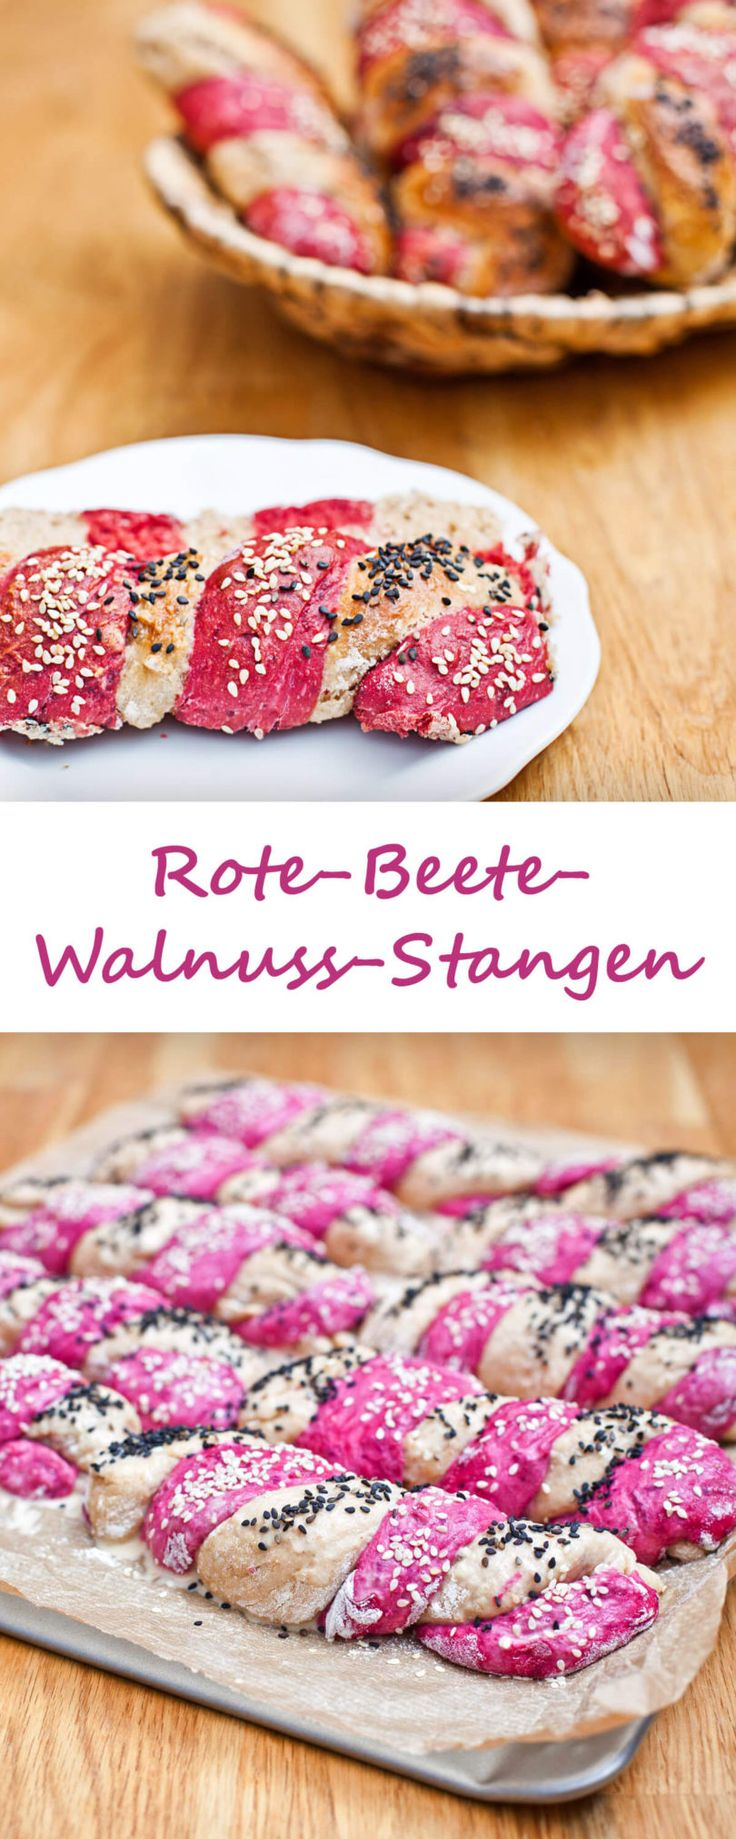 Rote-Beete-Walnuss-Stangen